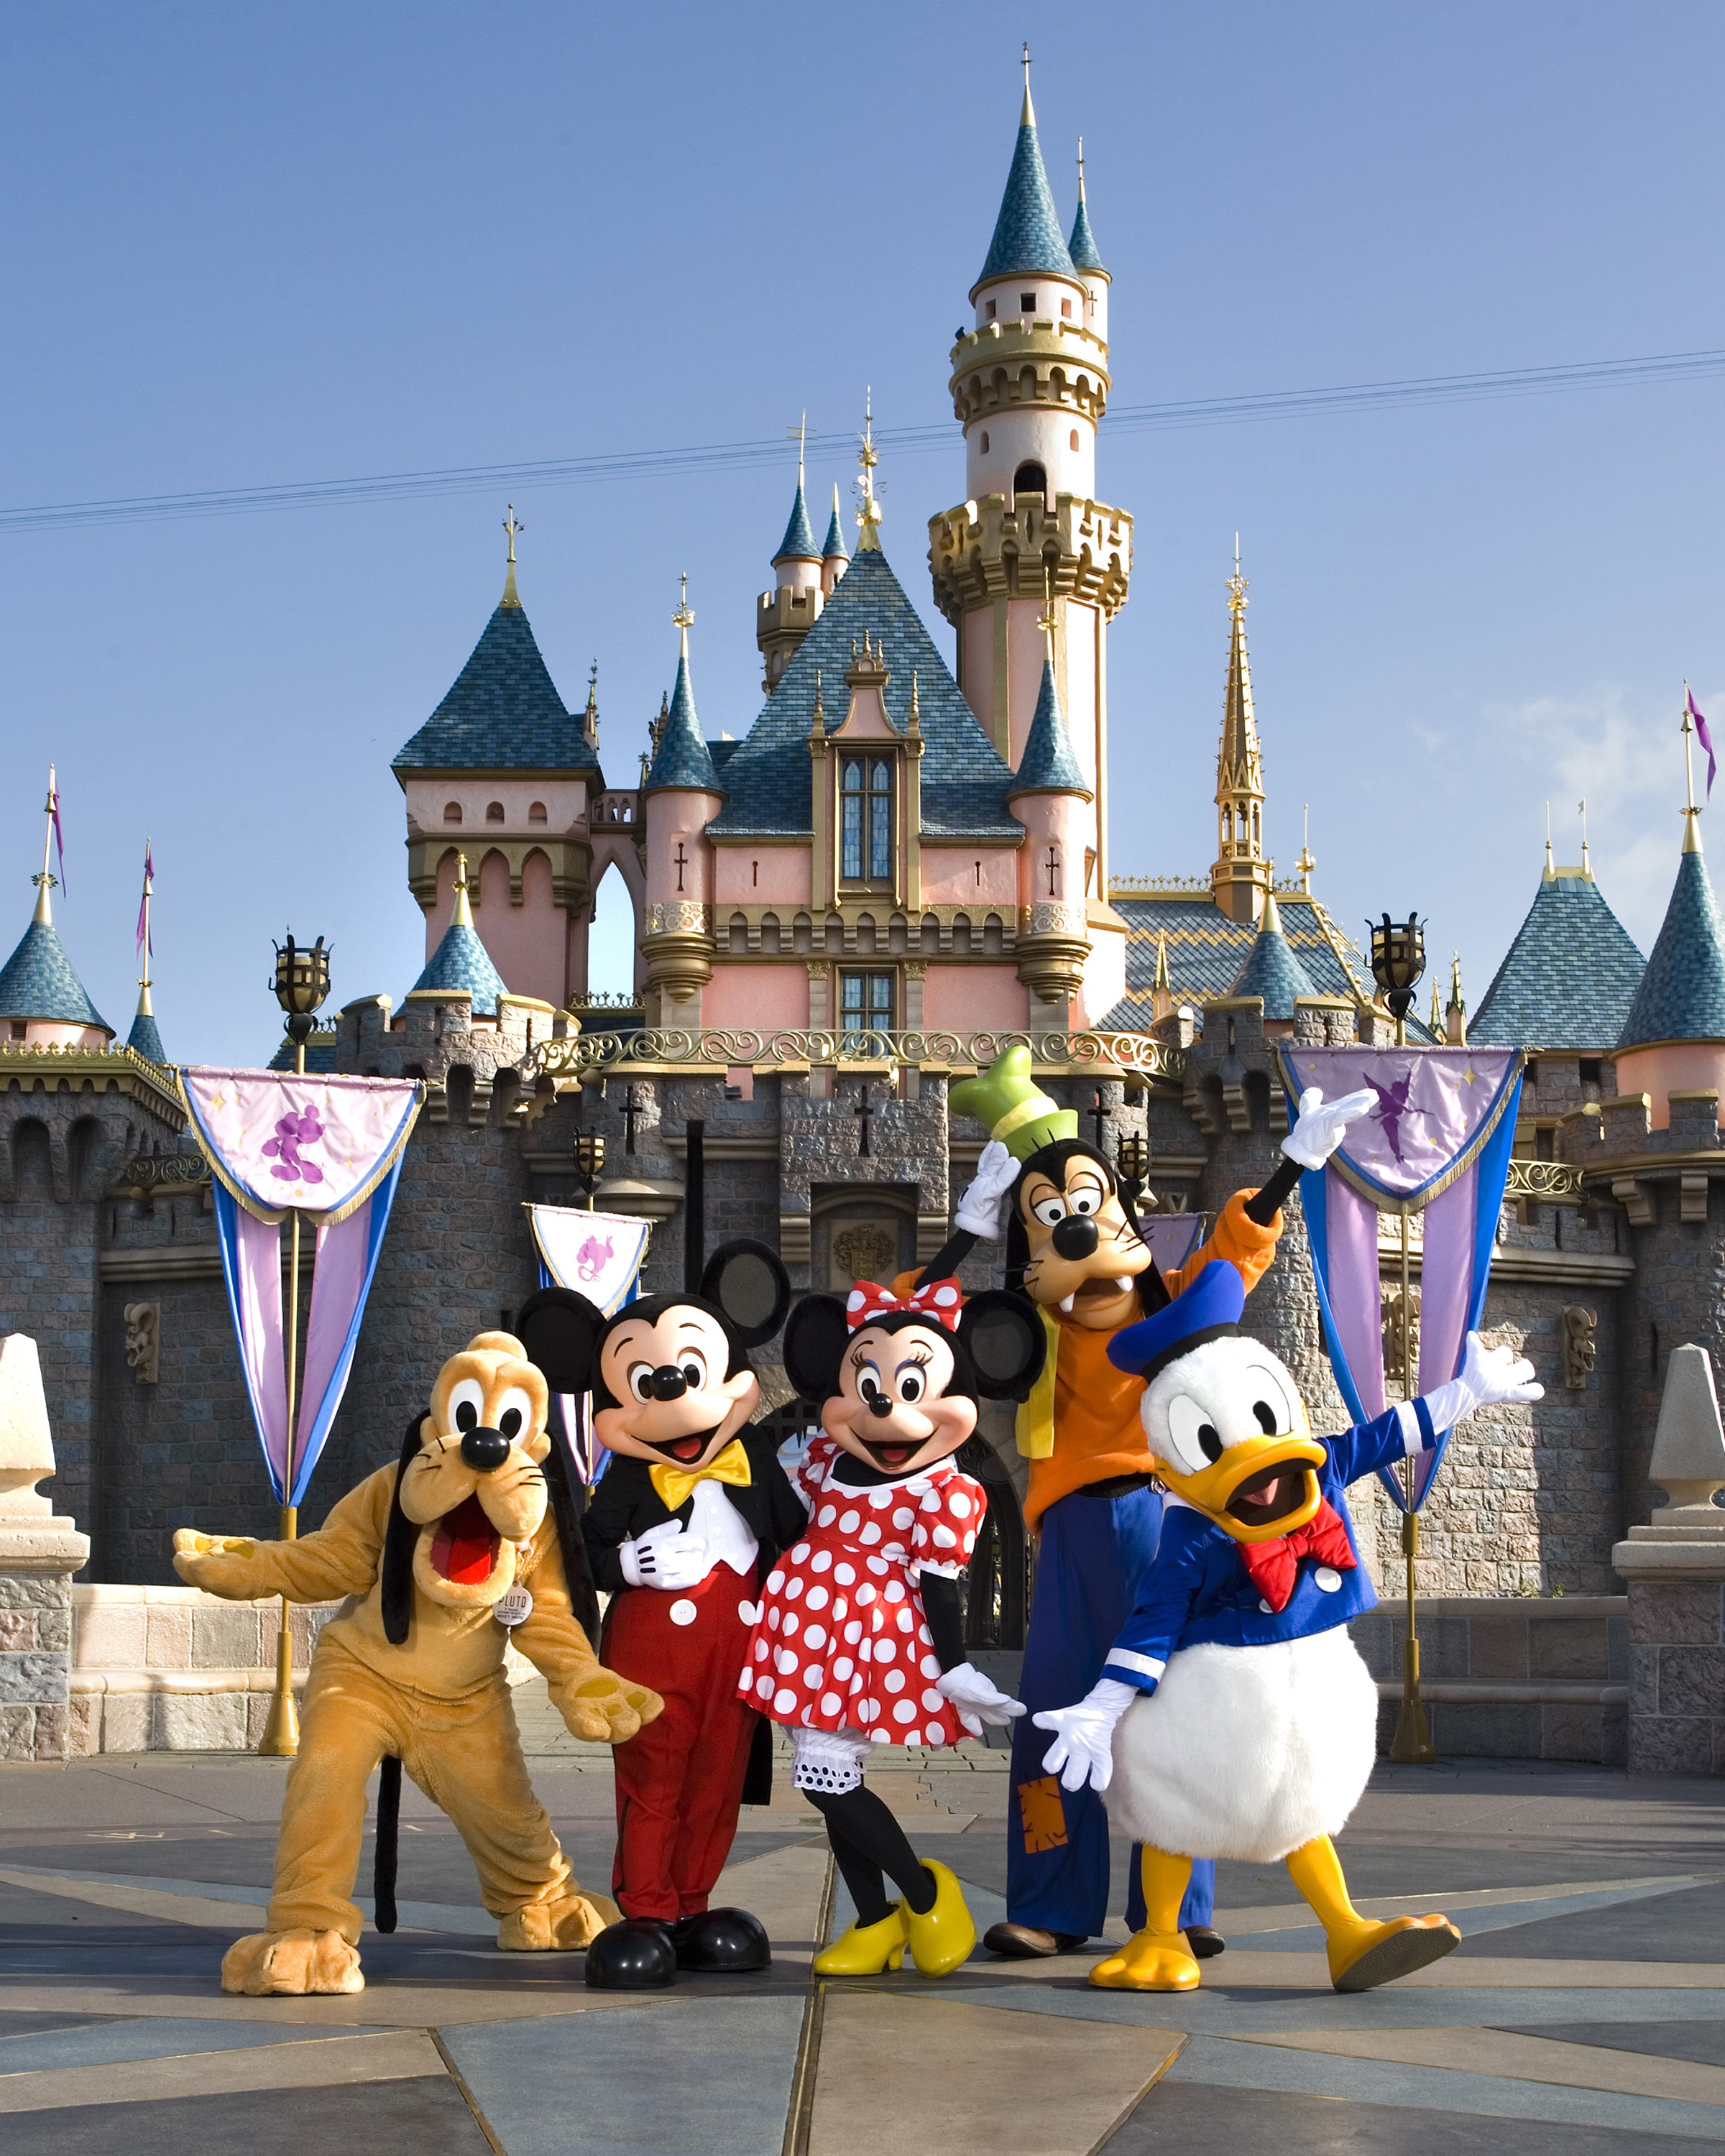 Take our Private Car Services to Disneyland